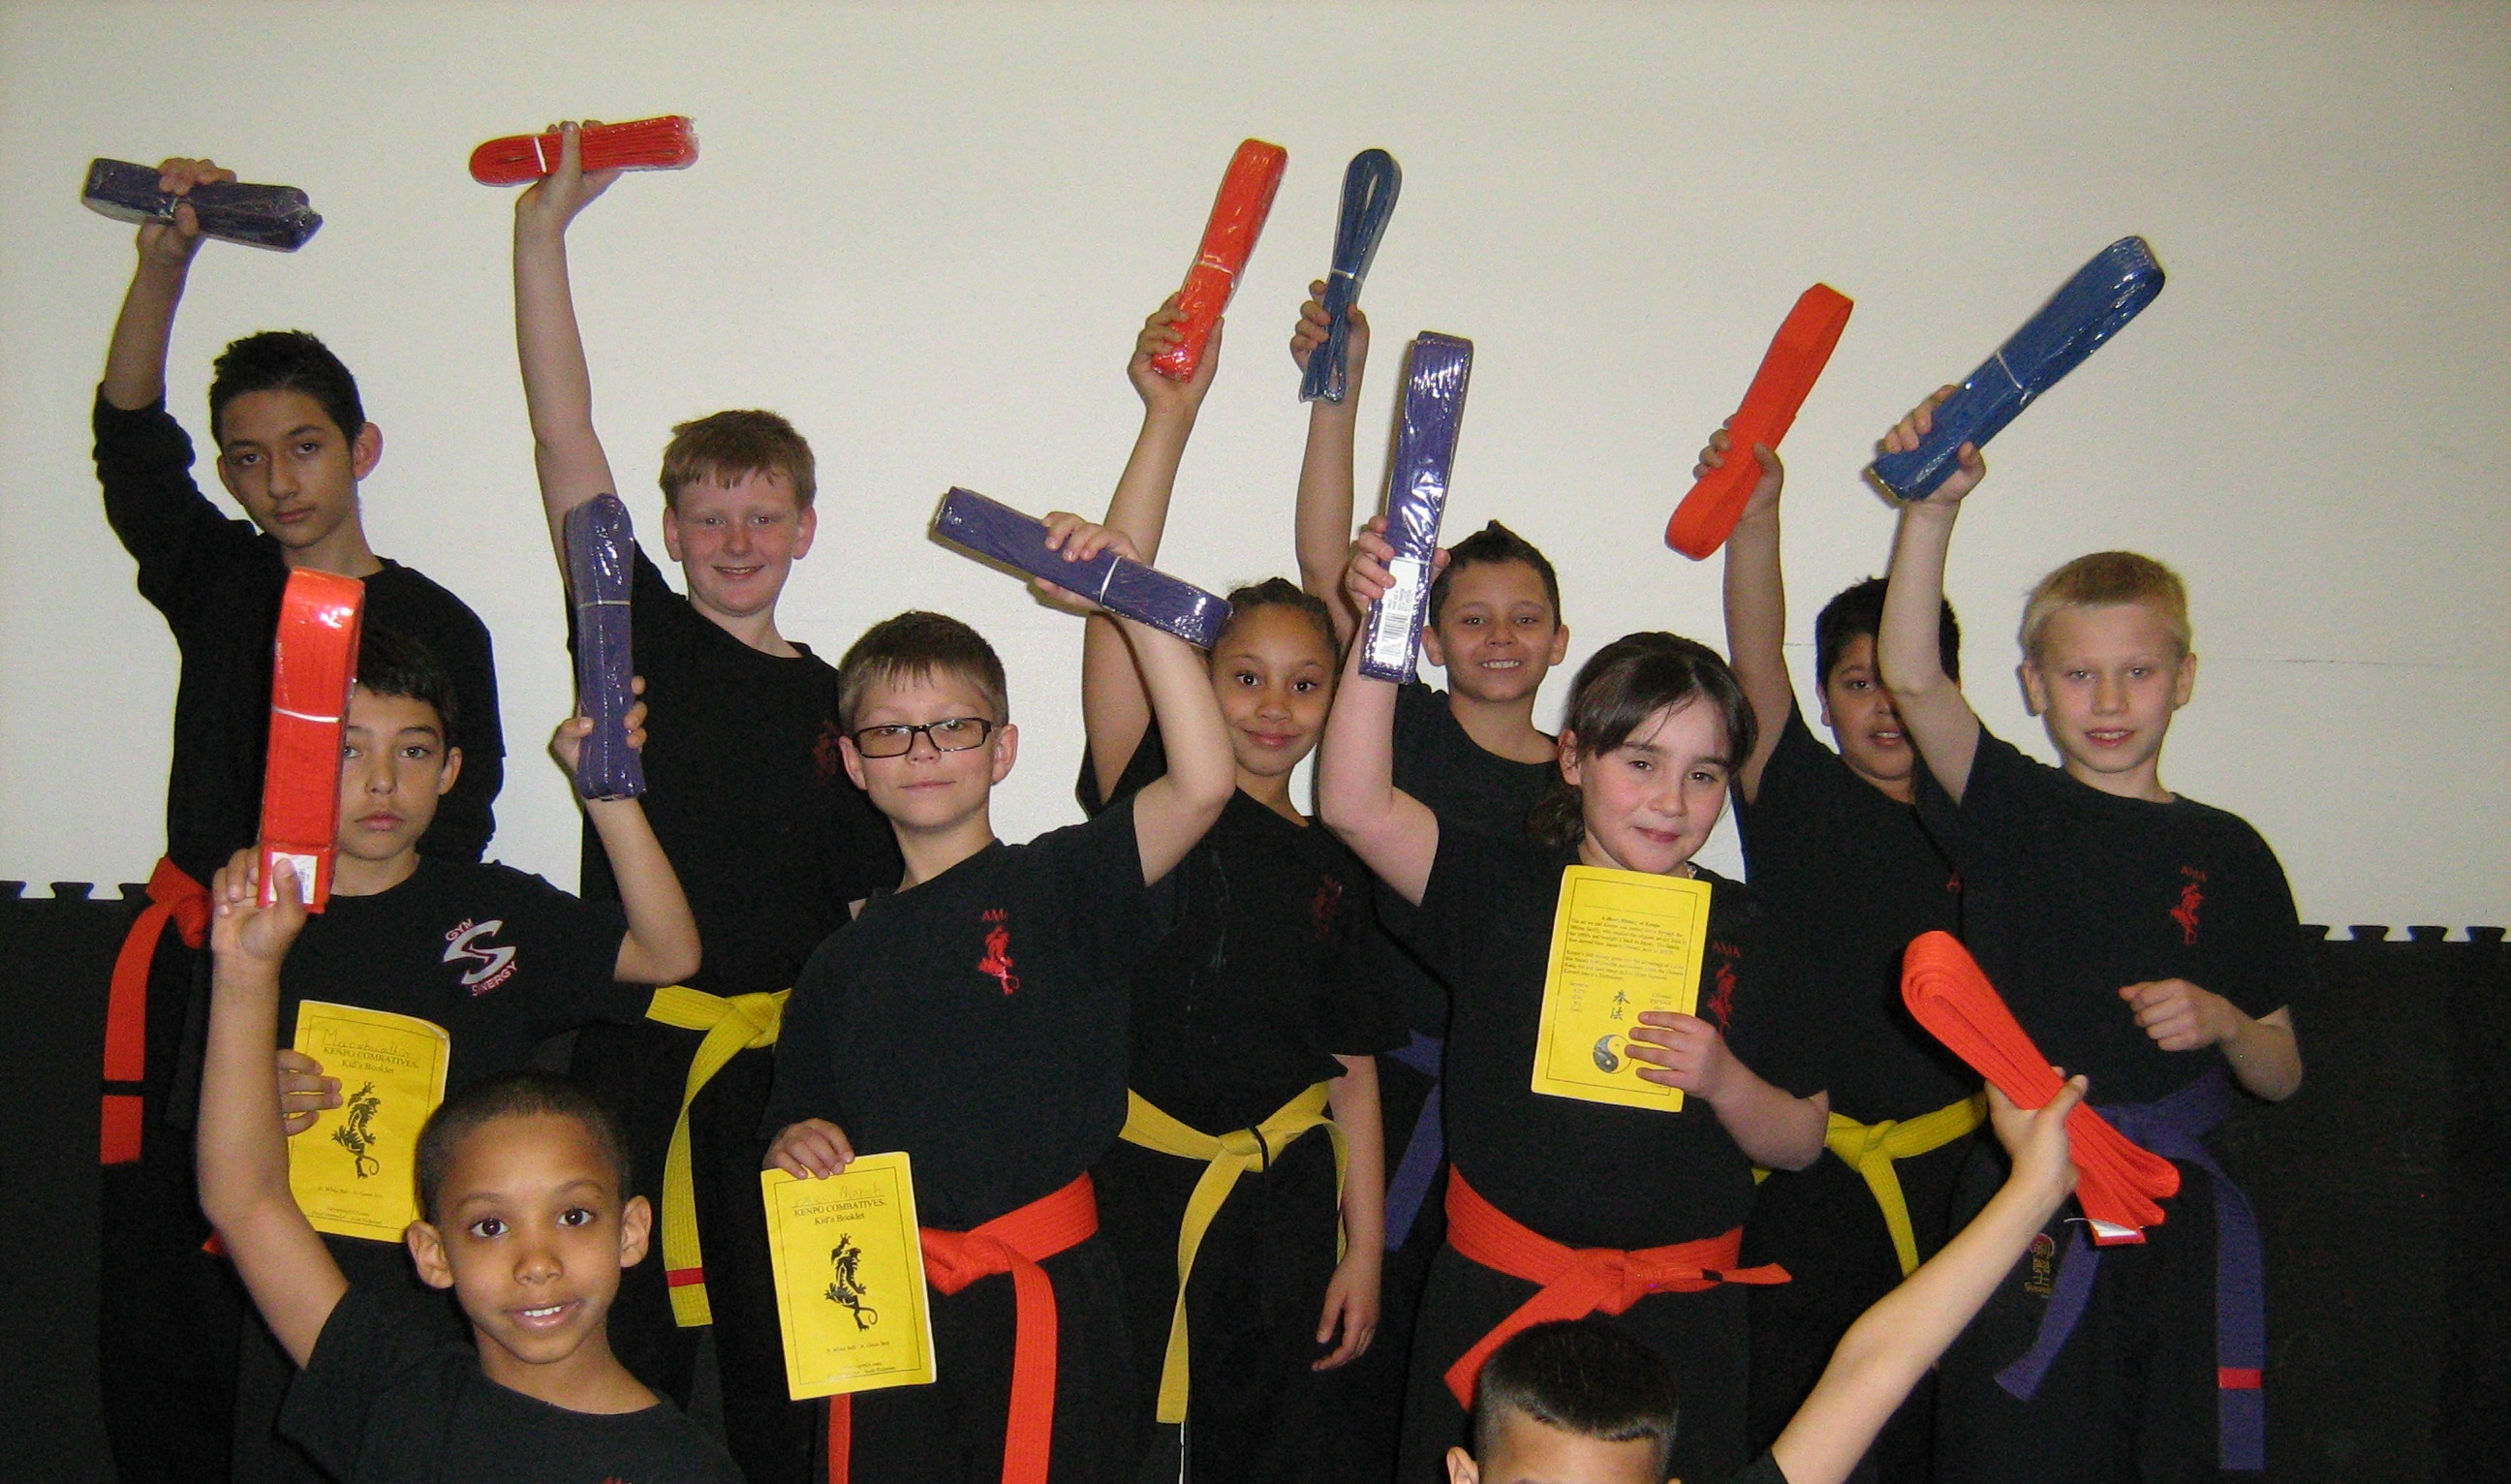 Kid's class students holding their new belts.